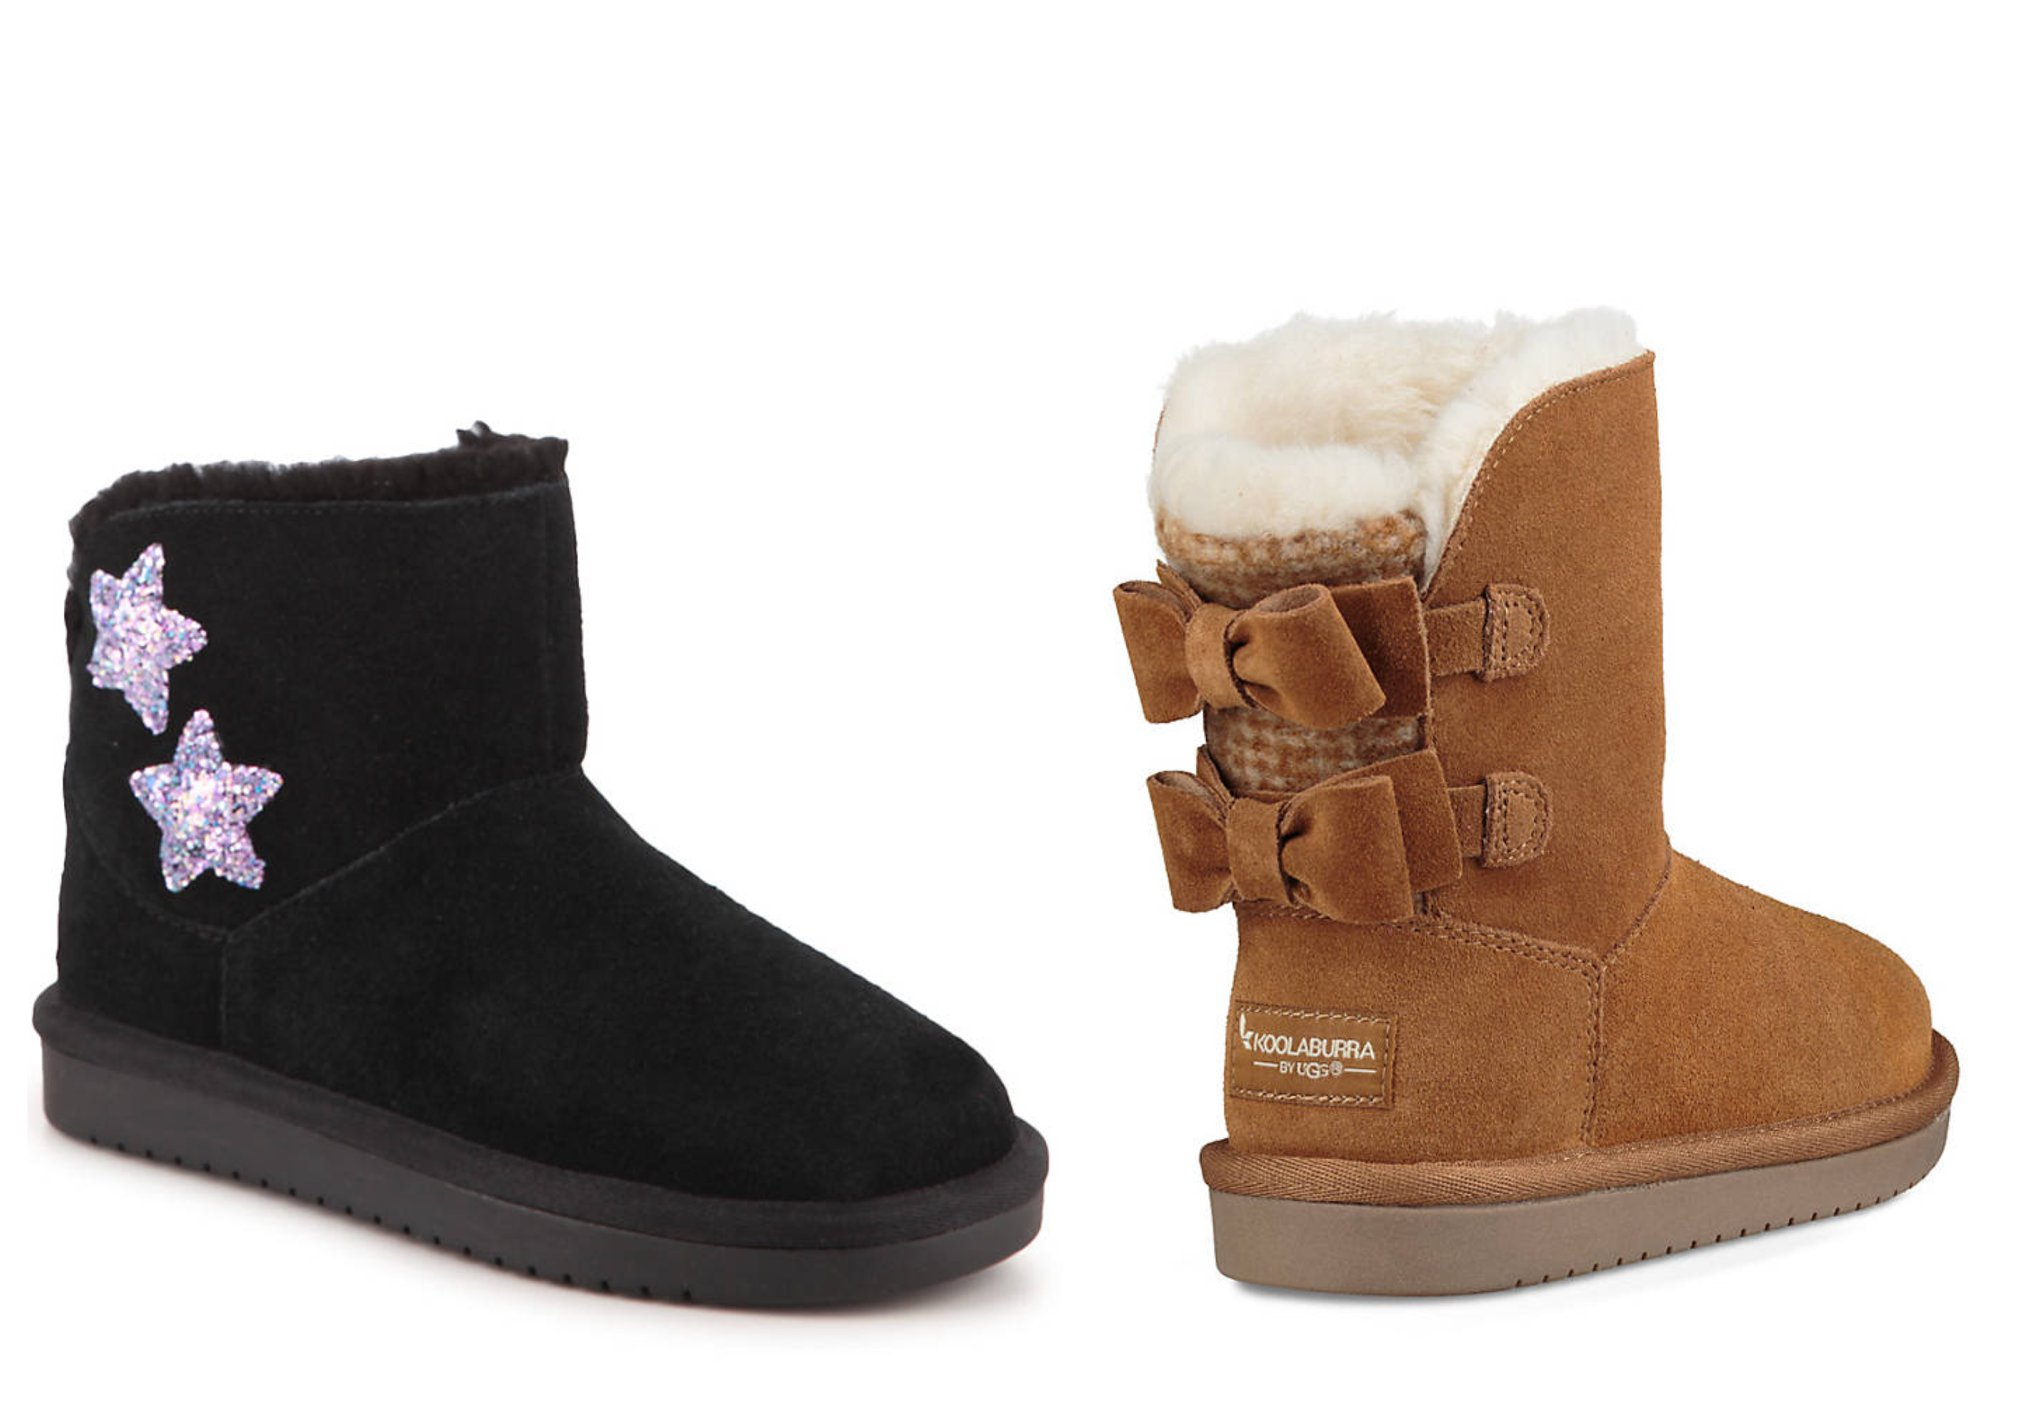 UGG Boots only $25 (reg $60